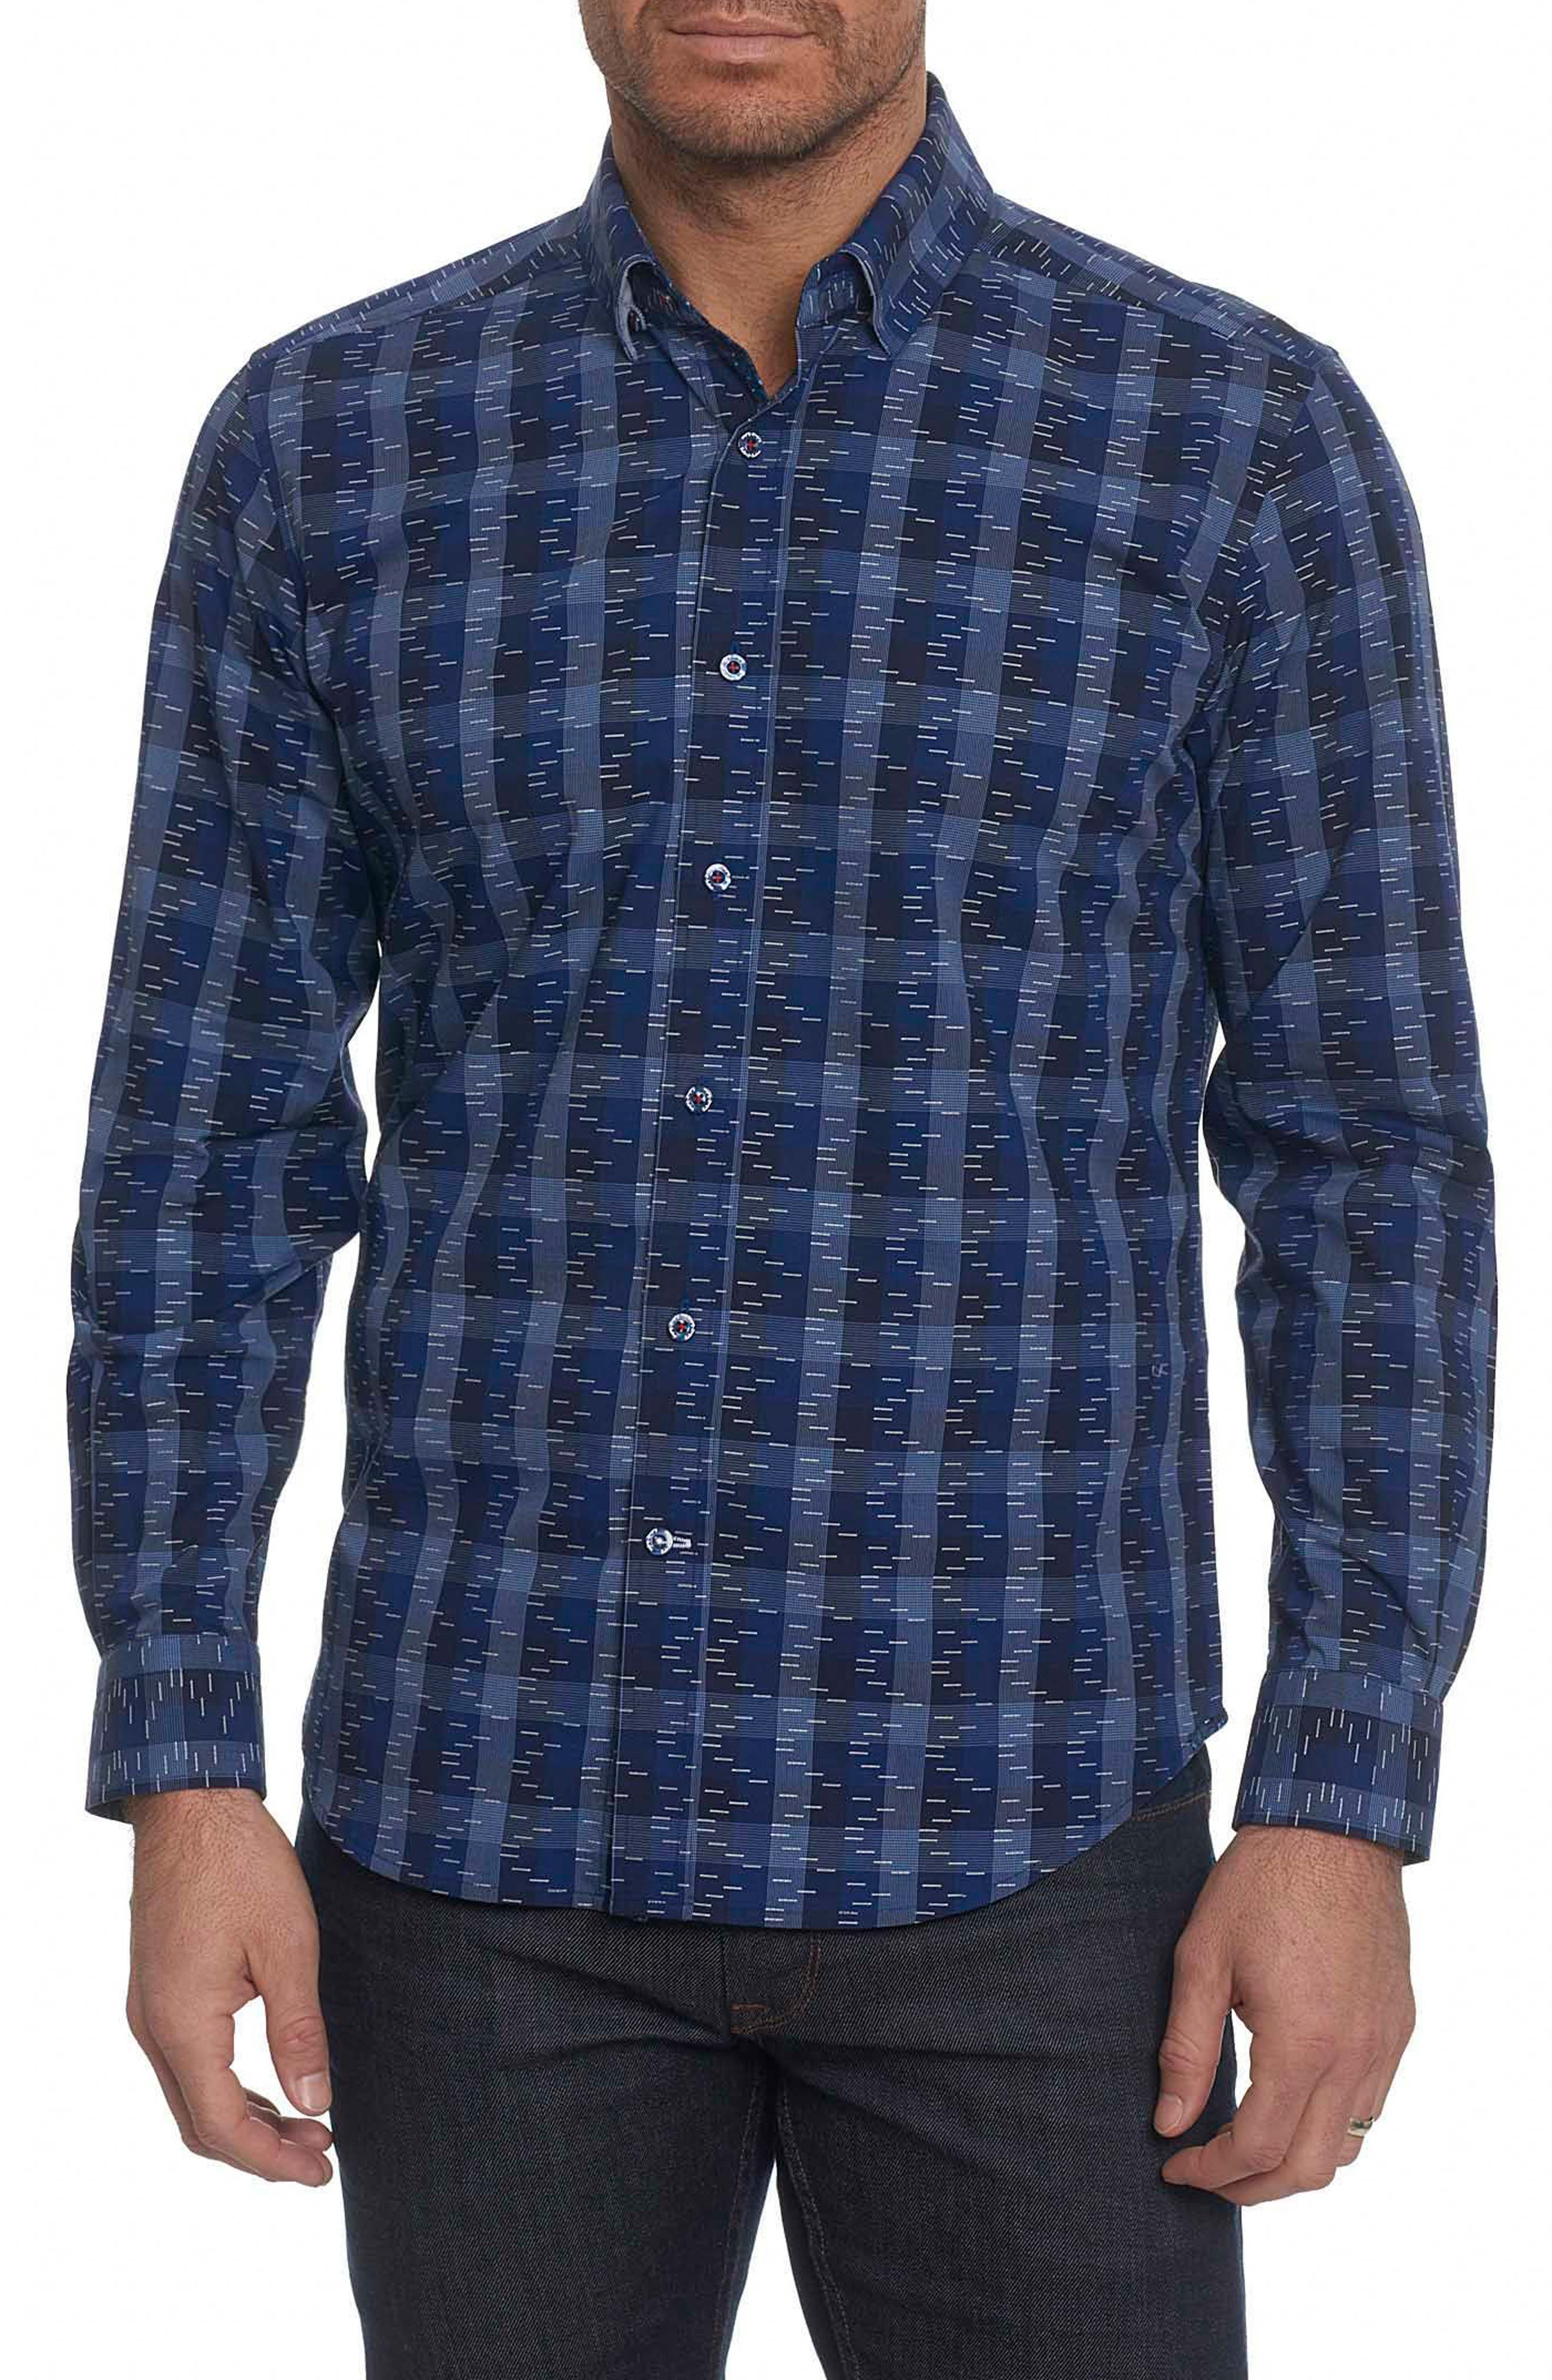 Levy Regular Fit Print Sport Shirt,                         Main,                         color, 410